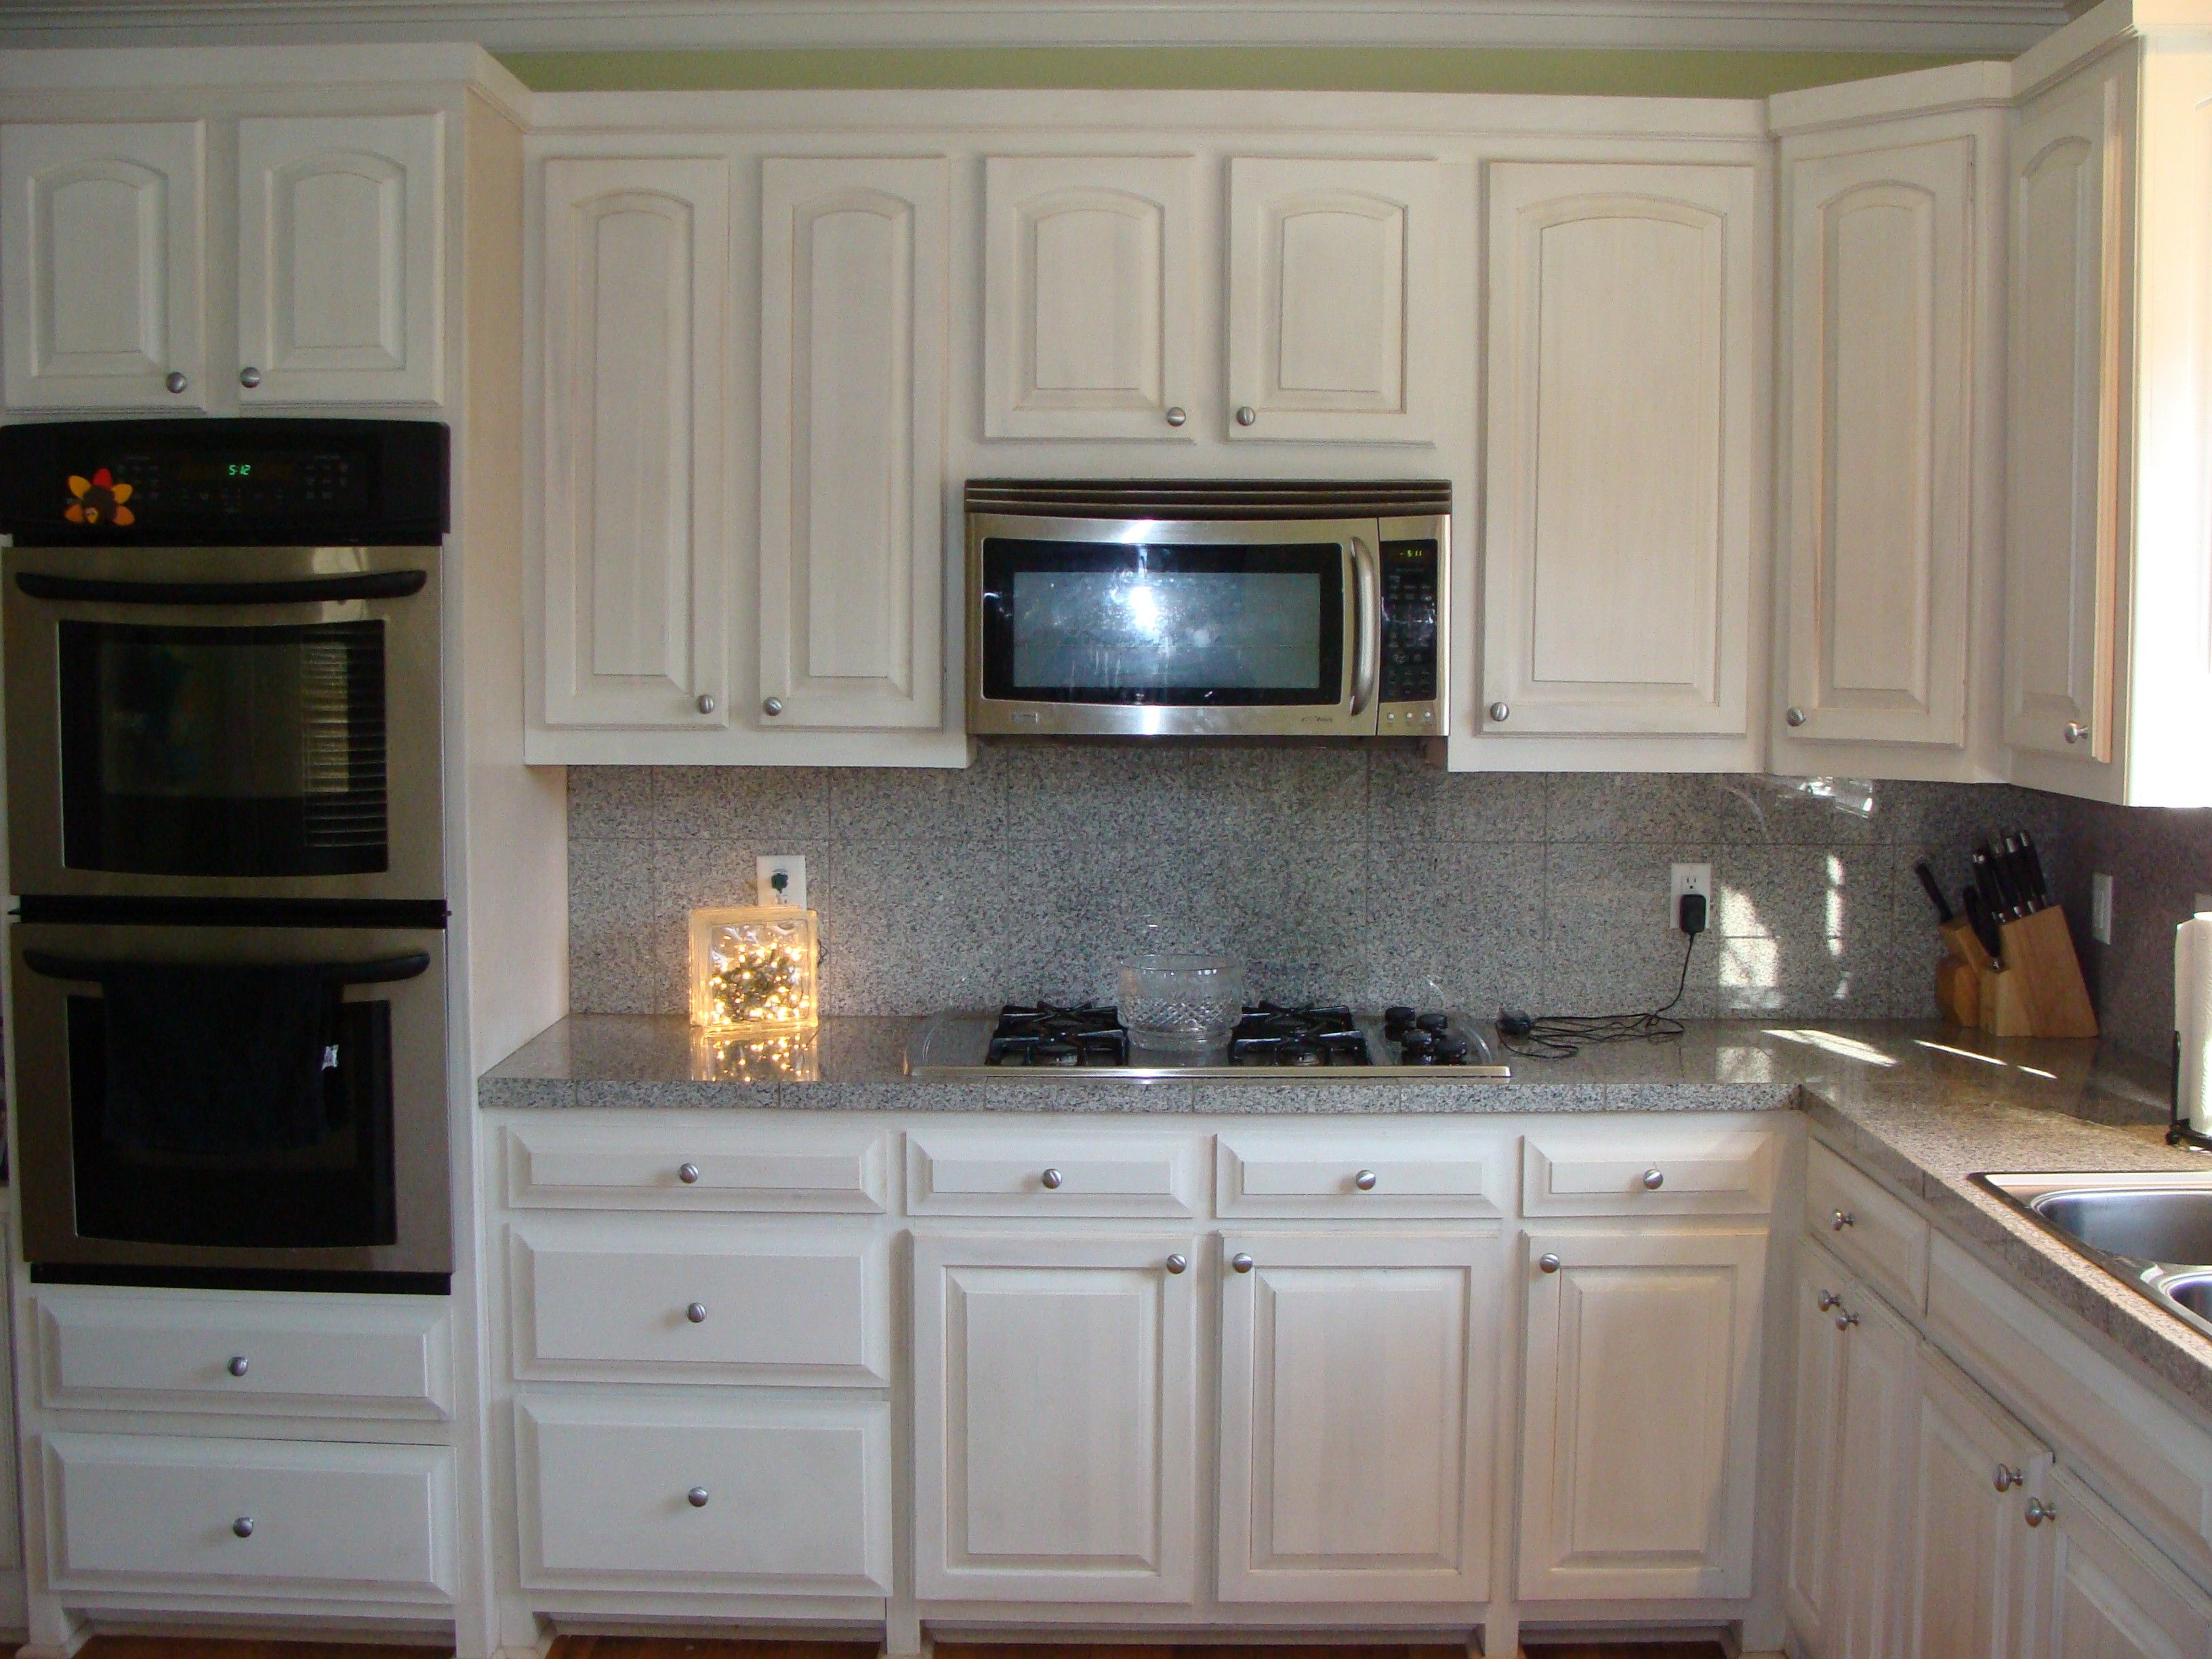 Luxury White Stained Kitchen Cabinets The Brilliant And Also Attractive White Stained Kitchen Cabinets Intended For Inspire Your Property Current Property In